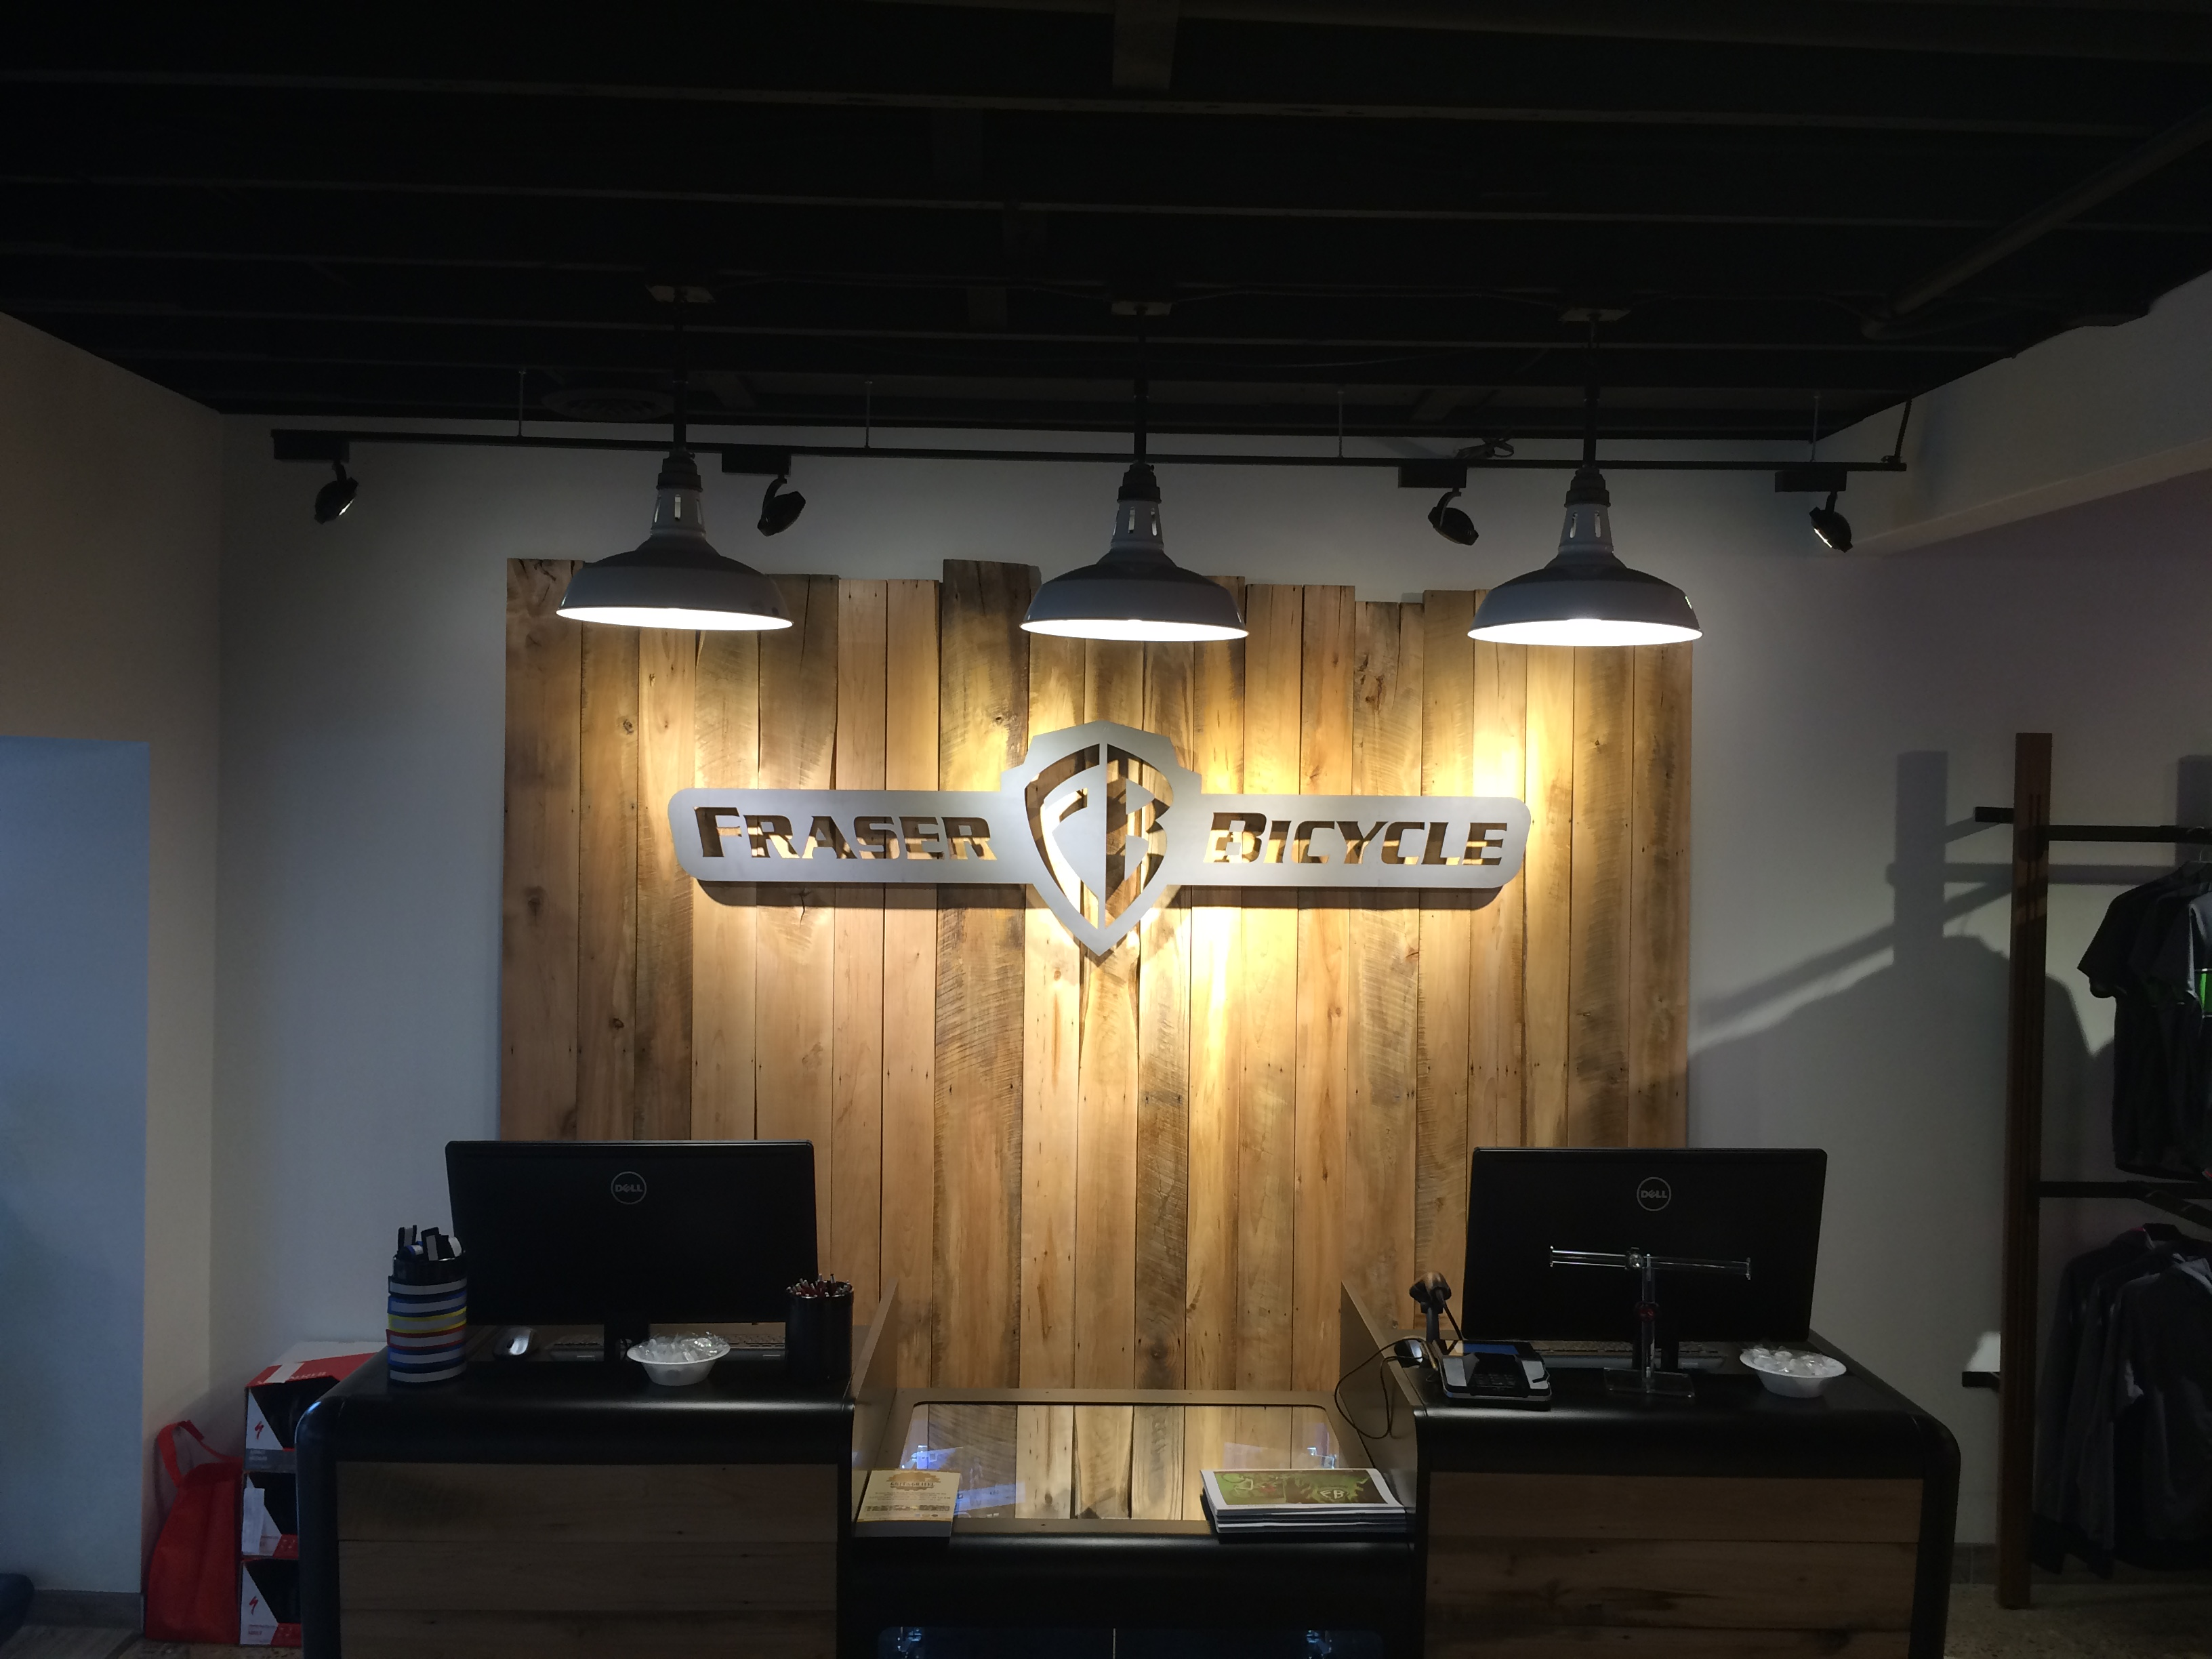 fraser bicycle opens new store in ann arbor